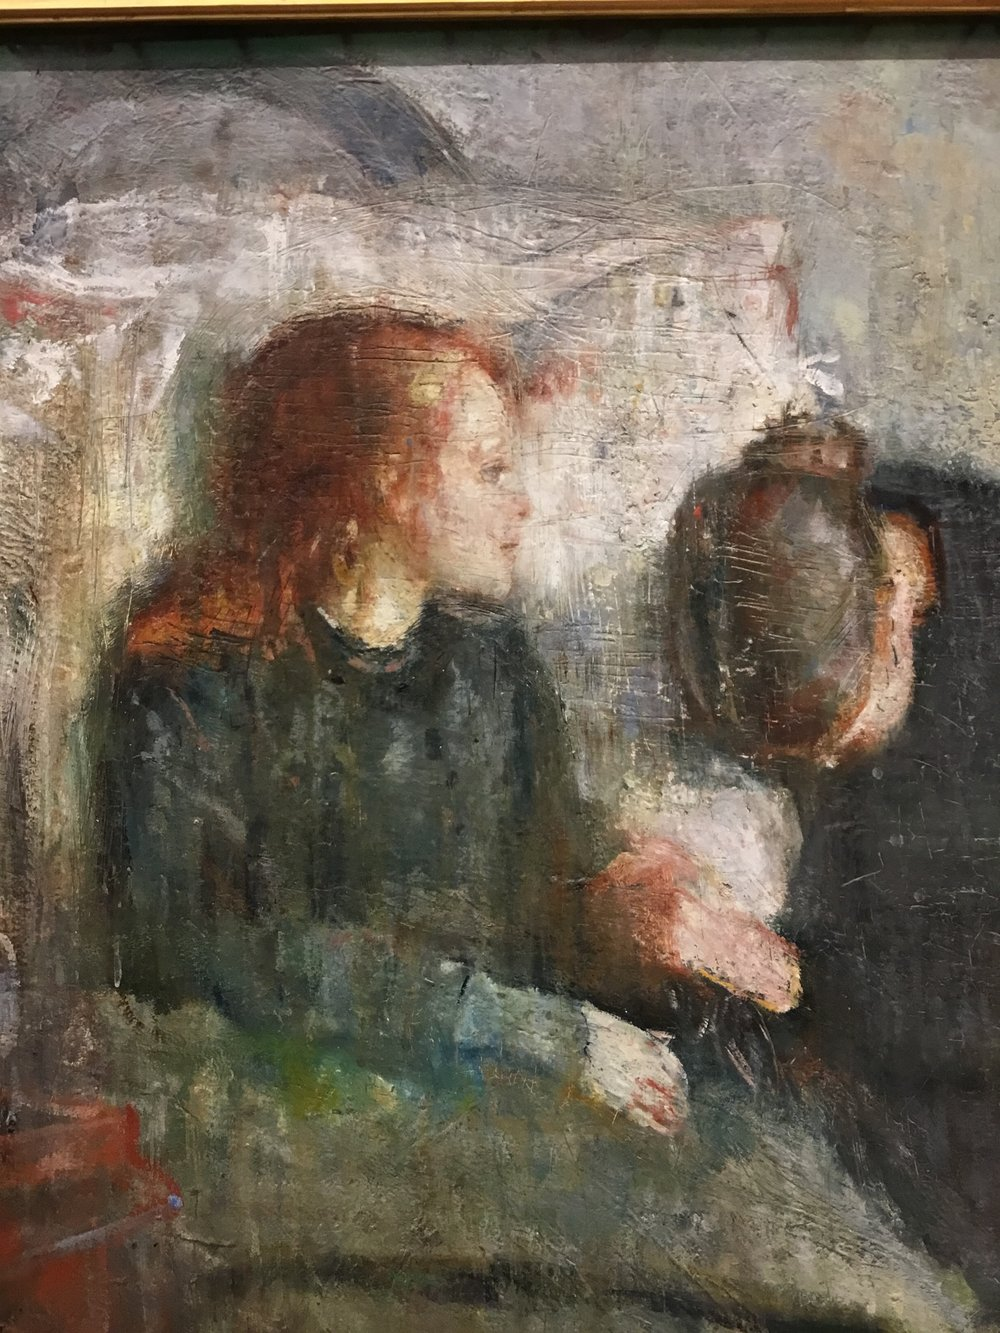 Edvard Munch, The Sick Child, 1885-86 (detail)